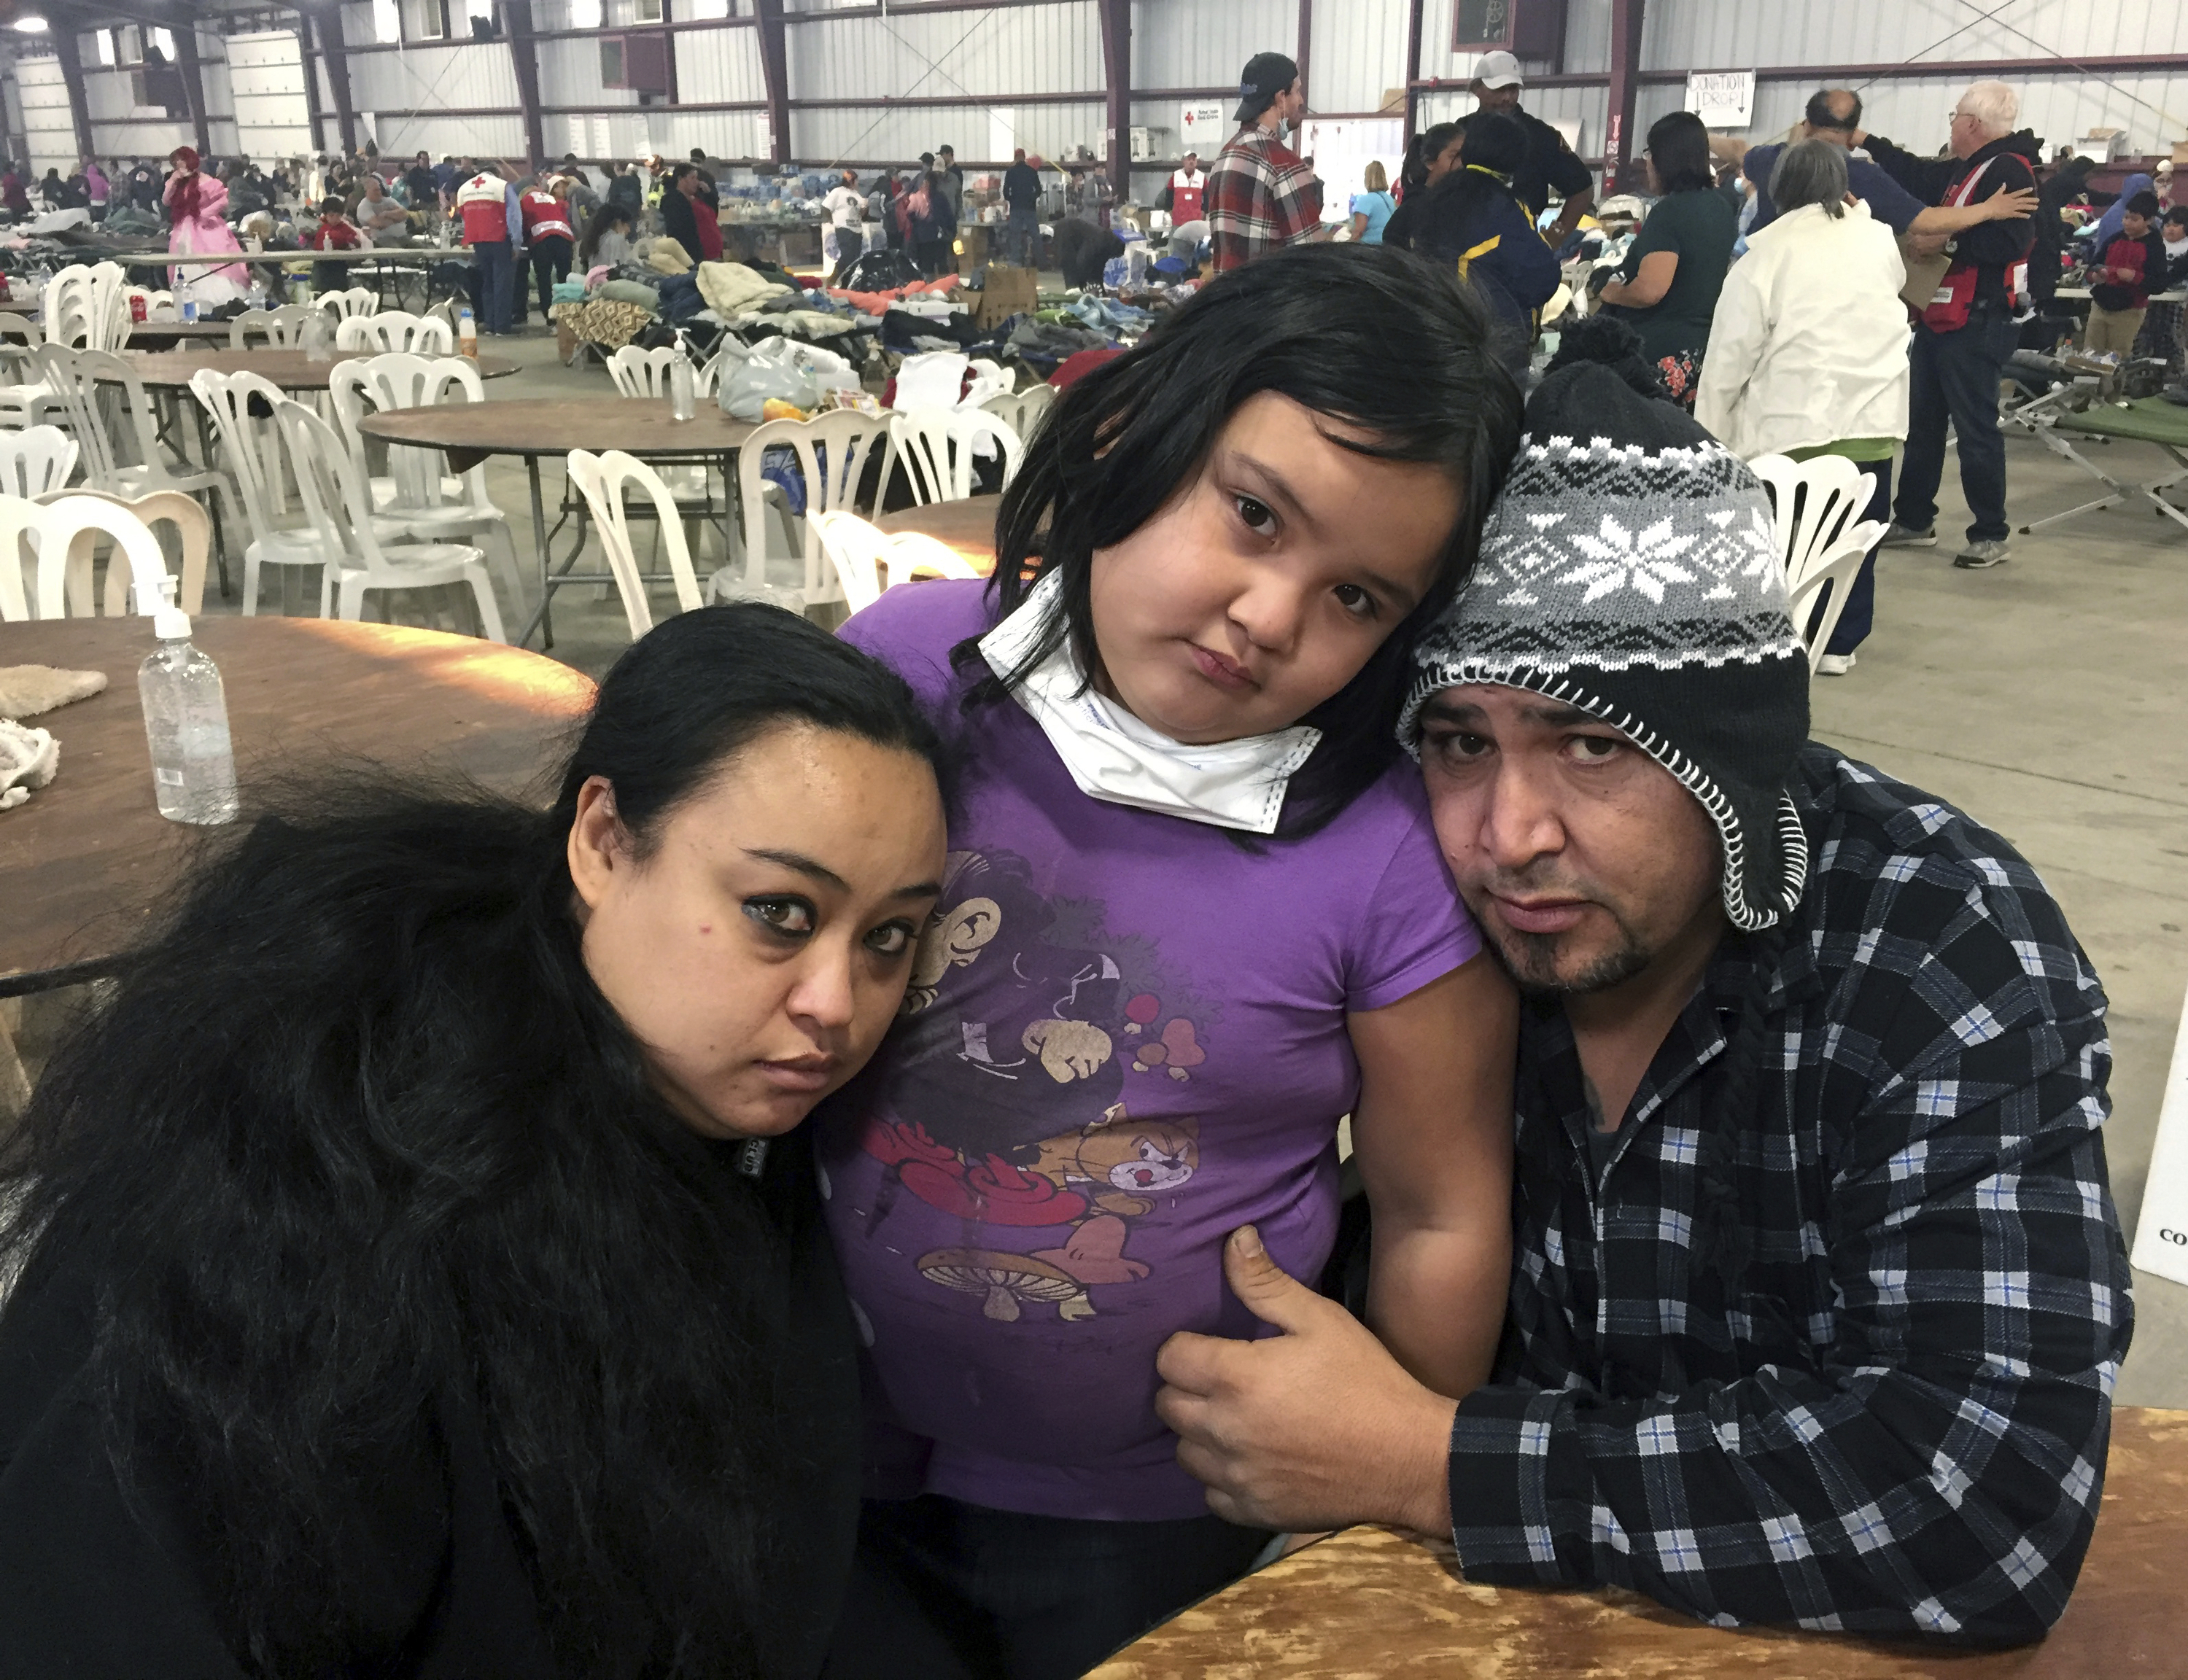 FILE - Wildfire survivors Marolyn Romero-Sim, left, with Hugo Romero-Rodriguez, center, and their 9-year-old daughter, Milagros, sit inside the evacuation center at the Ventura County Fairgrounds in Ventura, Calif., Dec. 6, 2017.